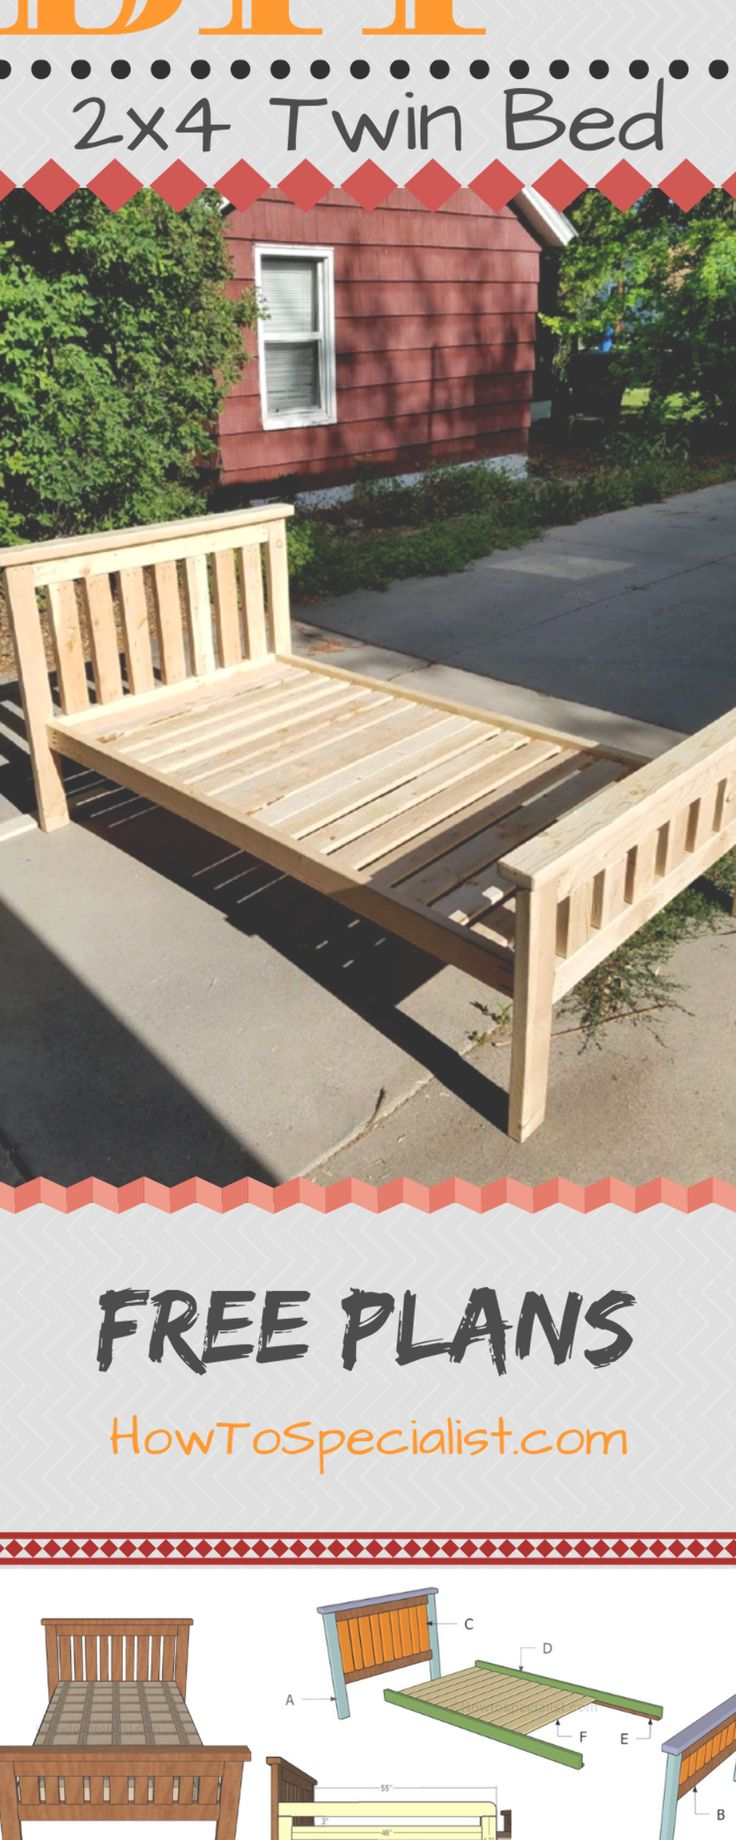 Step by Step guide on how to build a 2x4 twin bed. If you